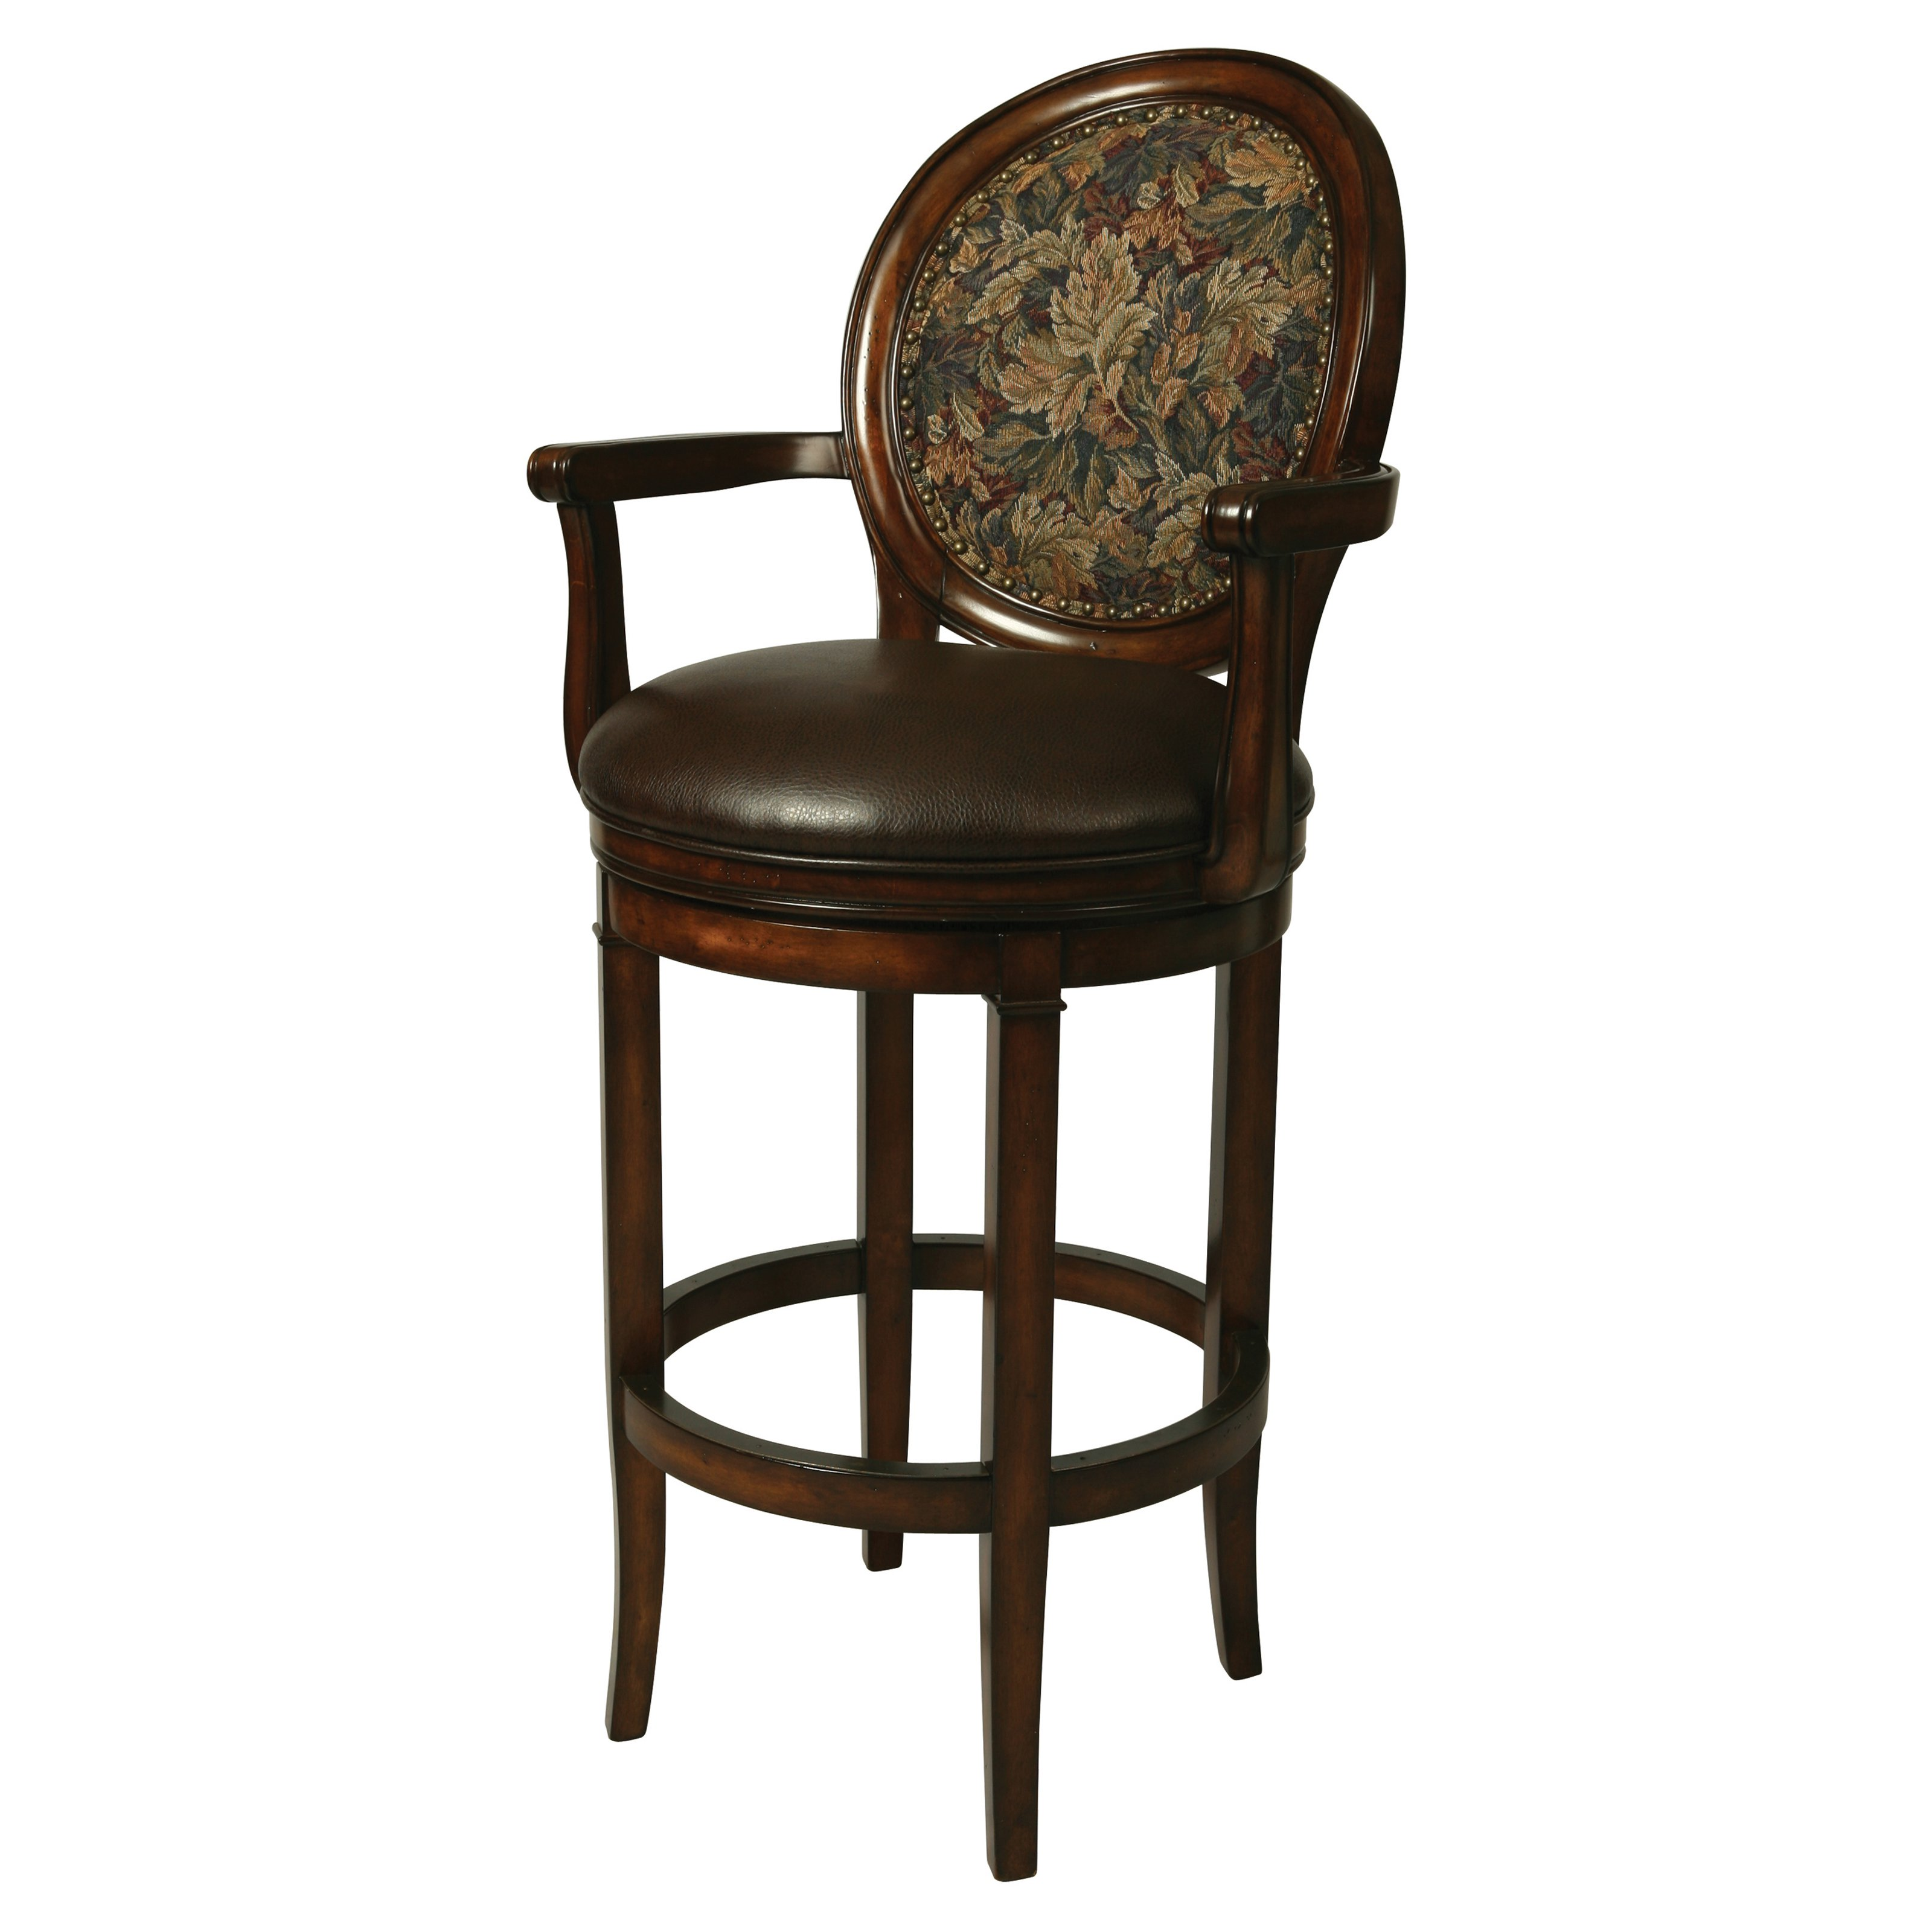 upholstered swivel bar stools with backs exciting traditional upholstered swivel bar stool with back and wooden UNLEGXV